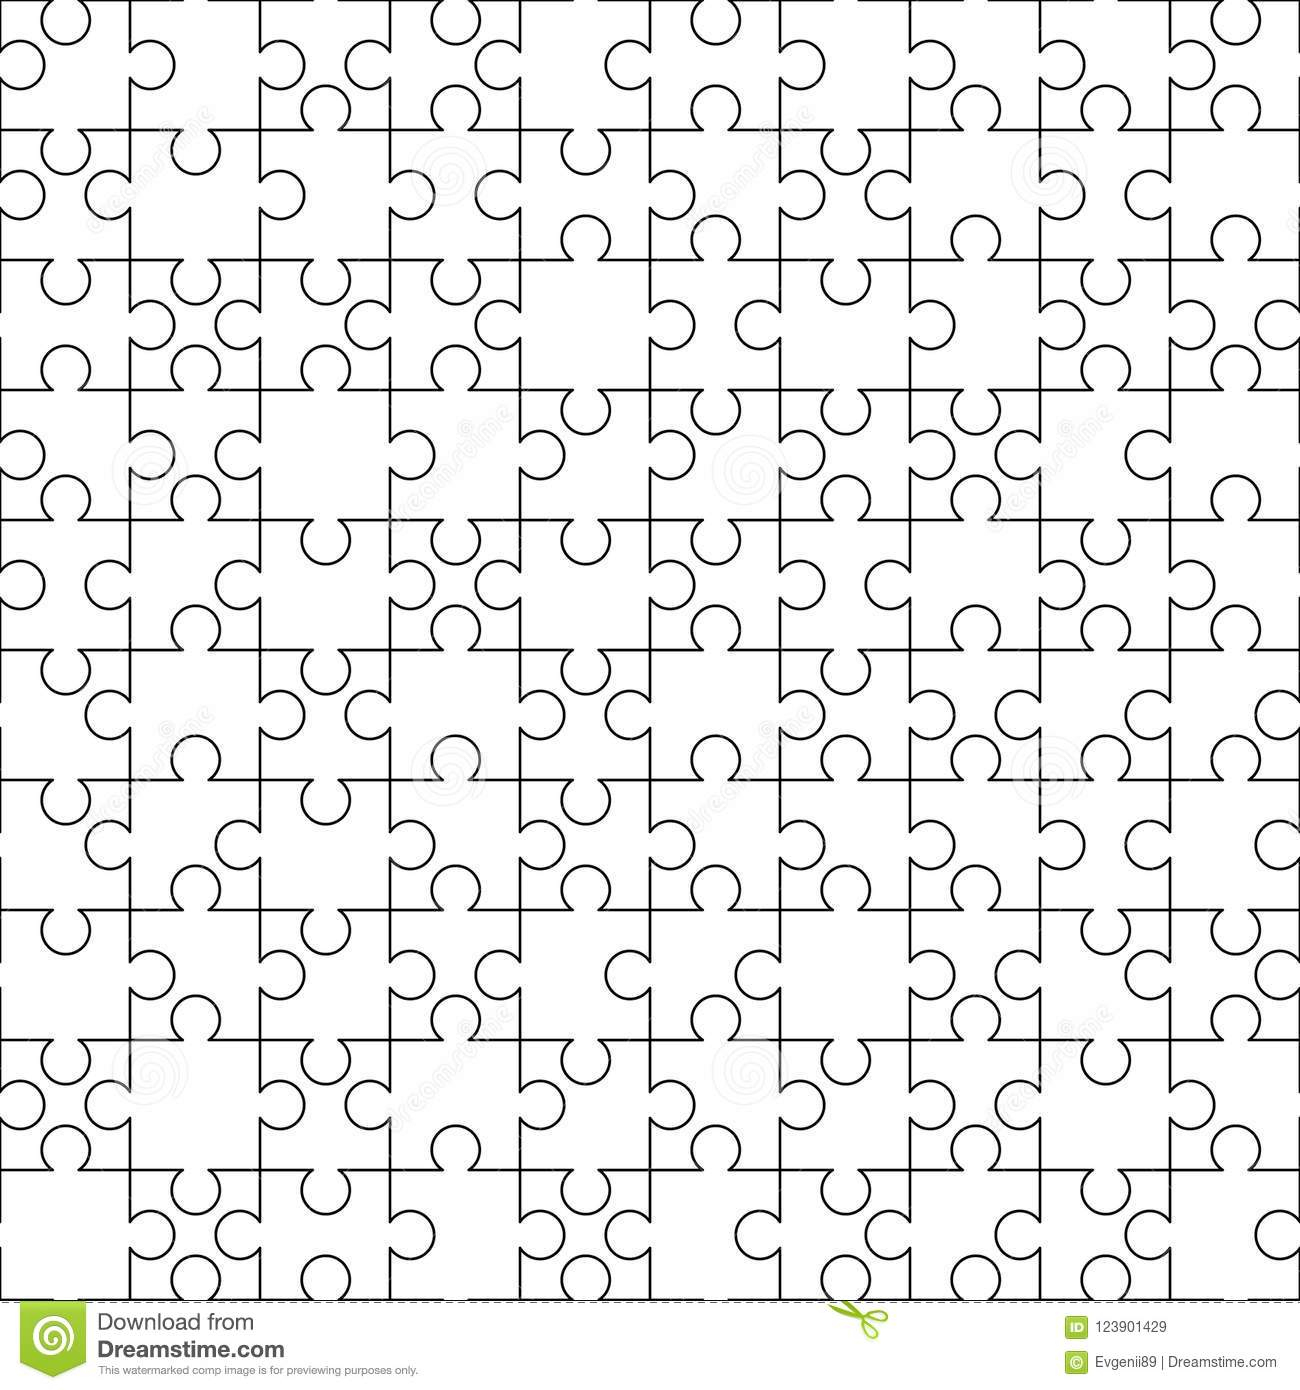 White Puzzles Pieces Seamless Pattern. Jigsaw Puzzle Template Ready - Print Jigsaw Puzzle